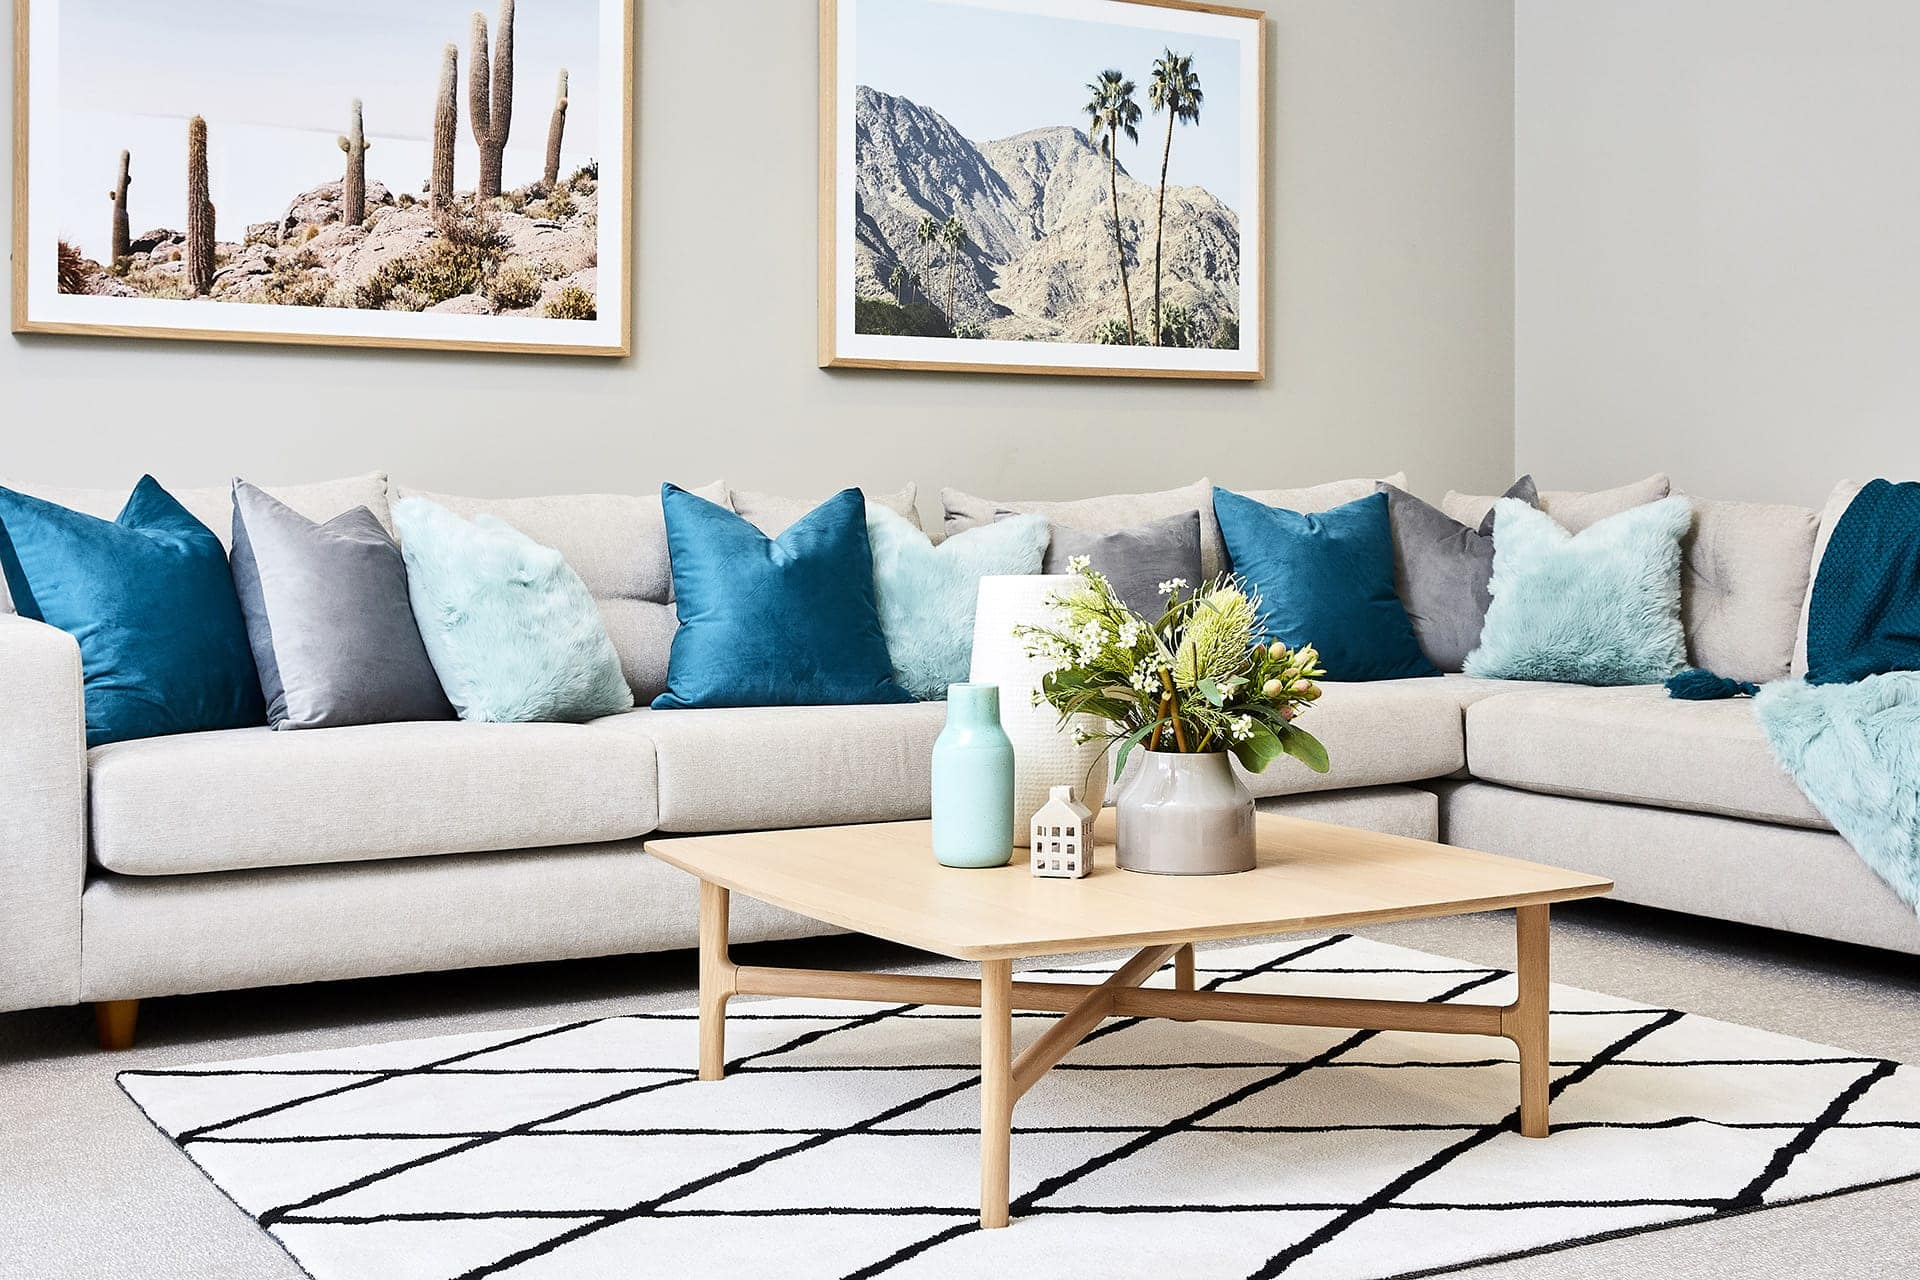 teal decorating ideas for living room holder super affordable spring inside and out lorraine lea mint cushions on sofa from tlc interiors